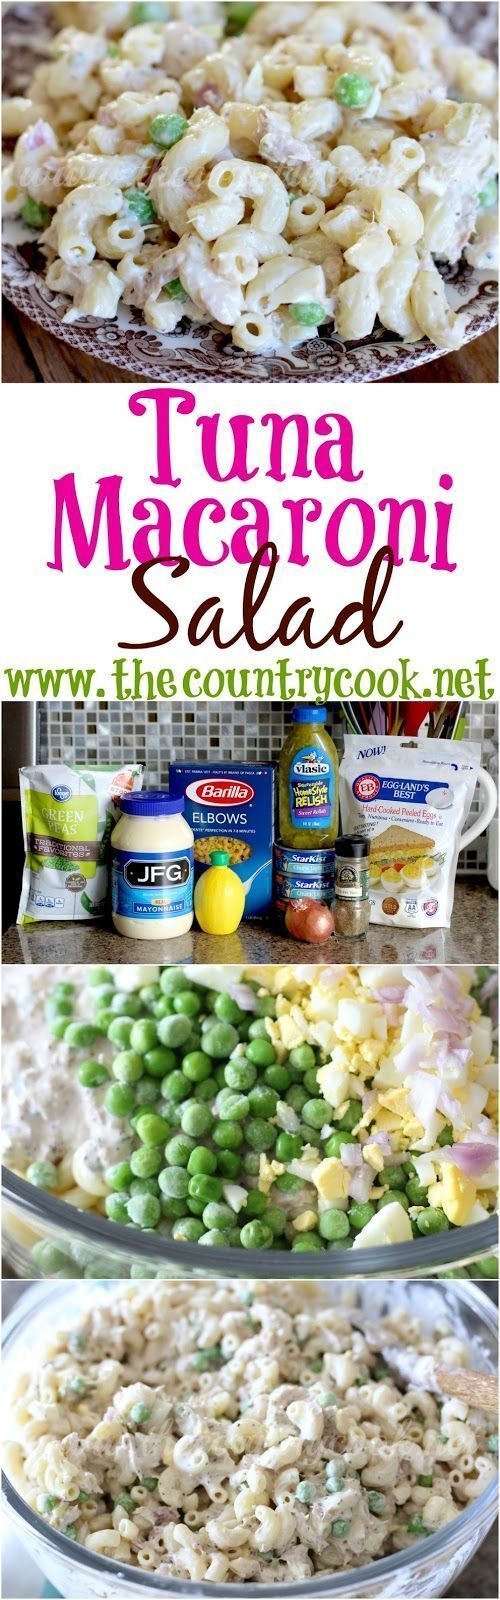 Best 25 tuna macaroni salad ideas on pinterest healthy for Macaroni salad with tuna fish